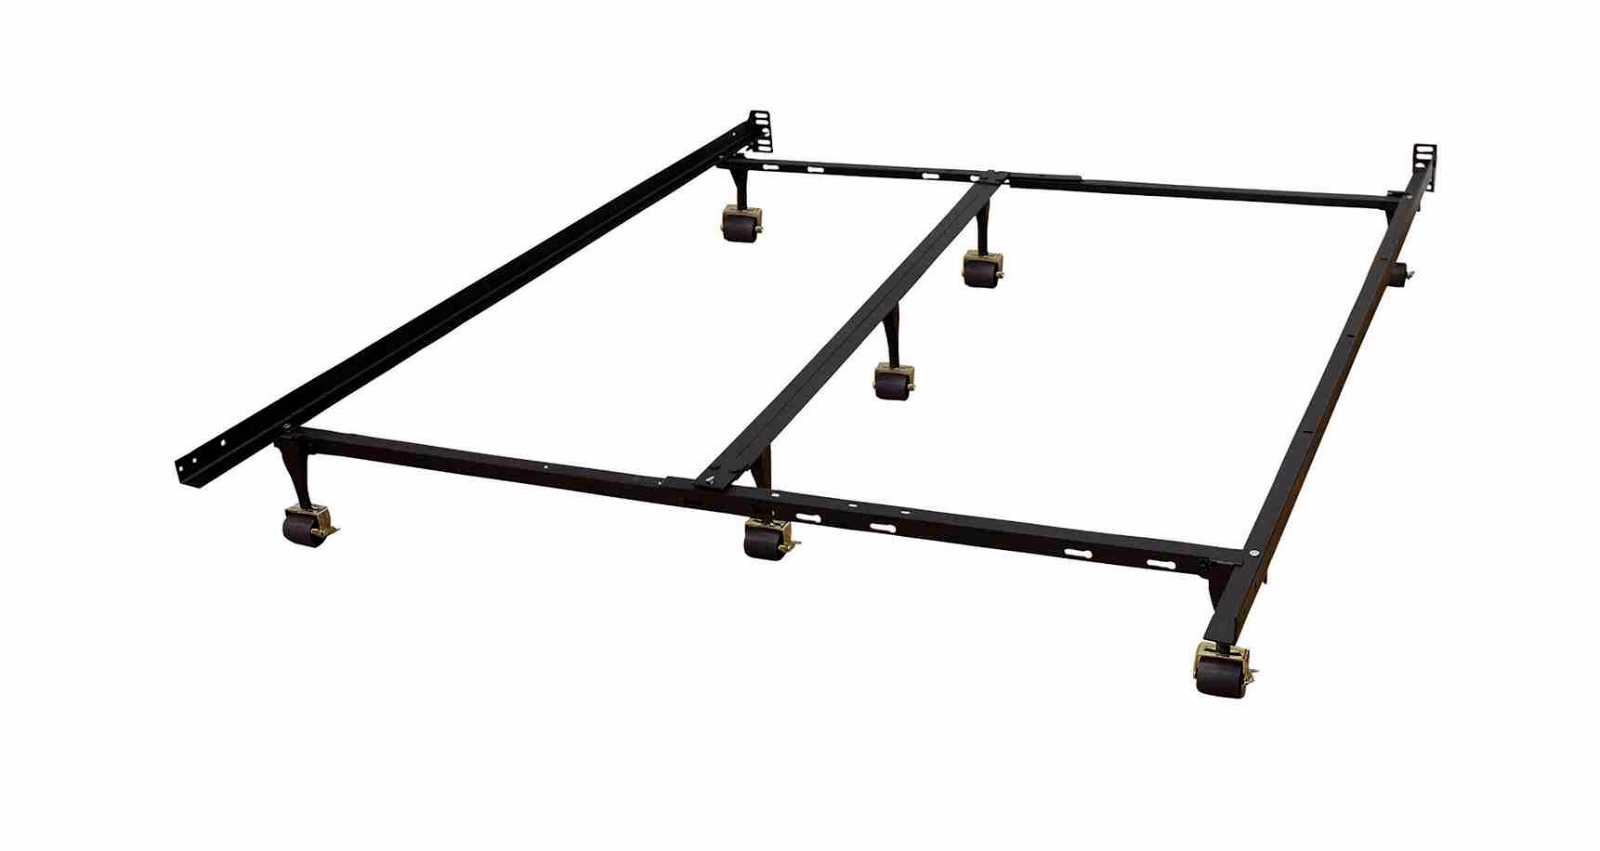 Metal Bed Frame For Box Spring Mattress Adjustable Twin